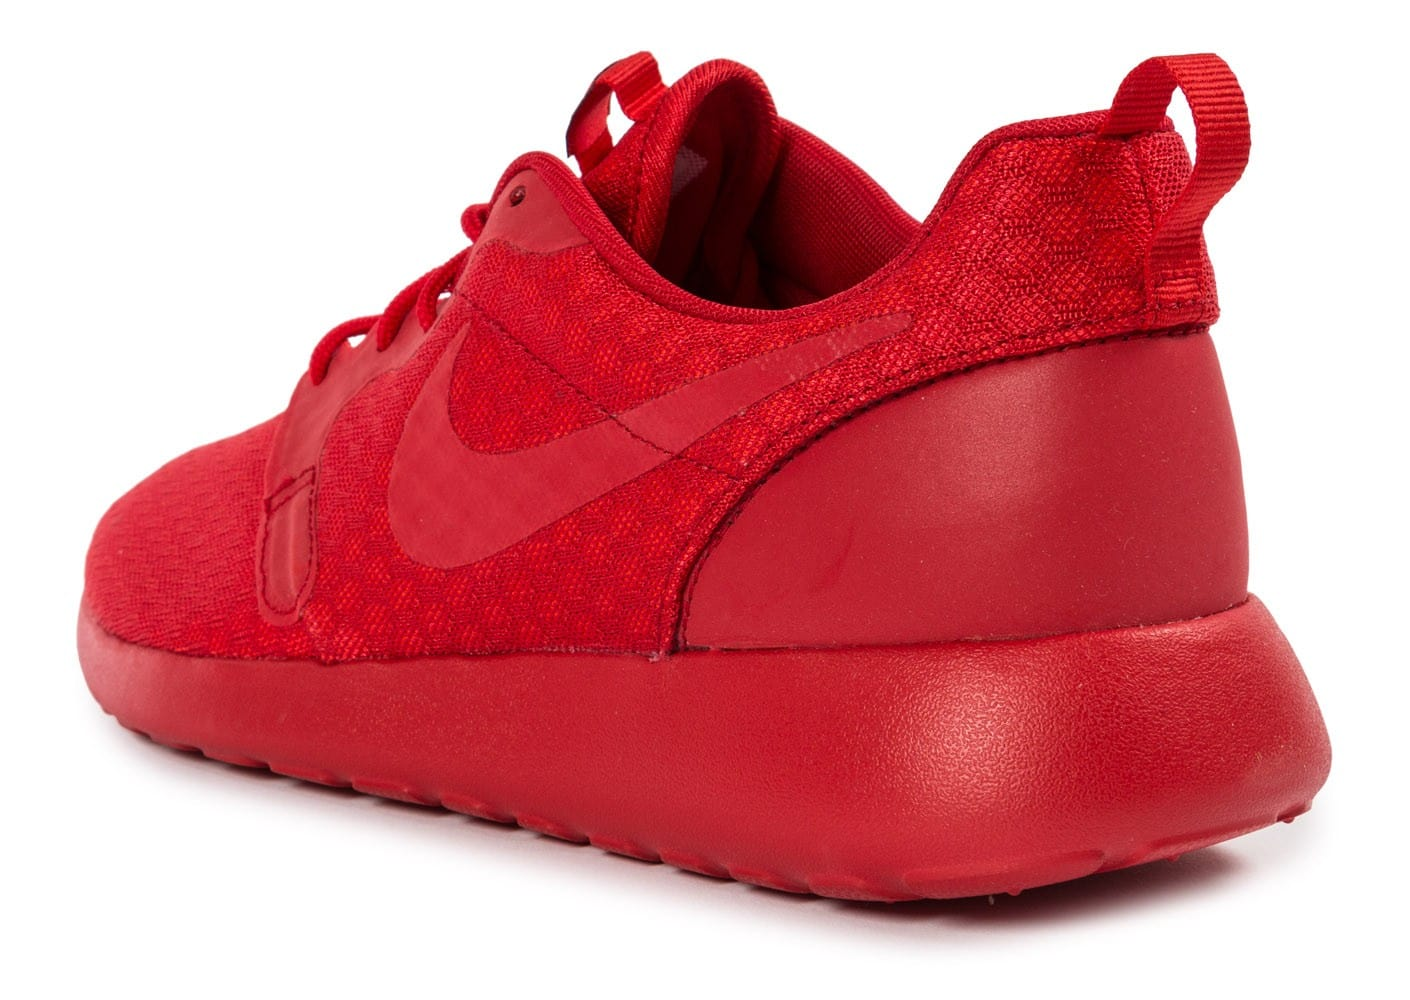 Chaussures Nike Roshe Run rouges Fashion homme btJxX45A